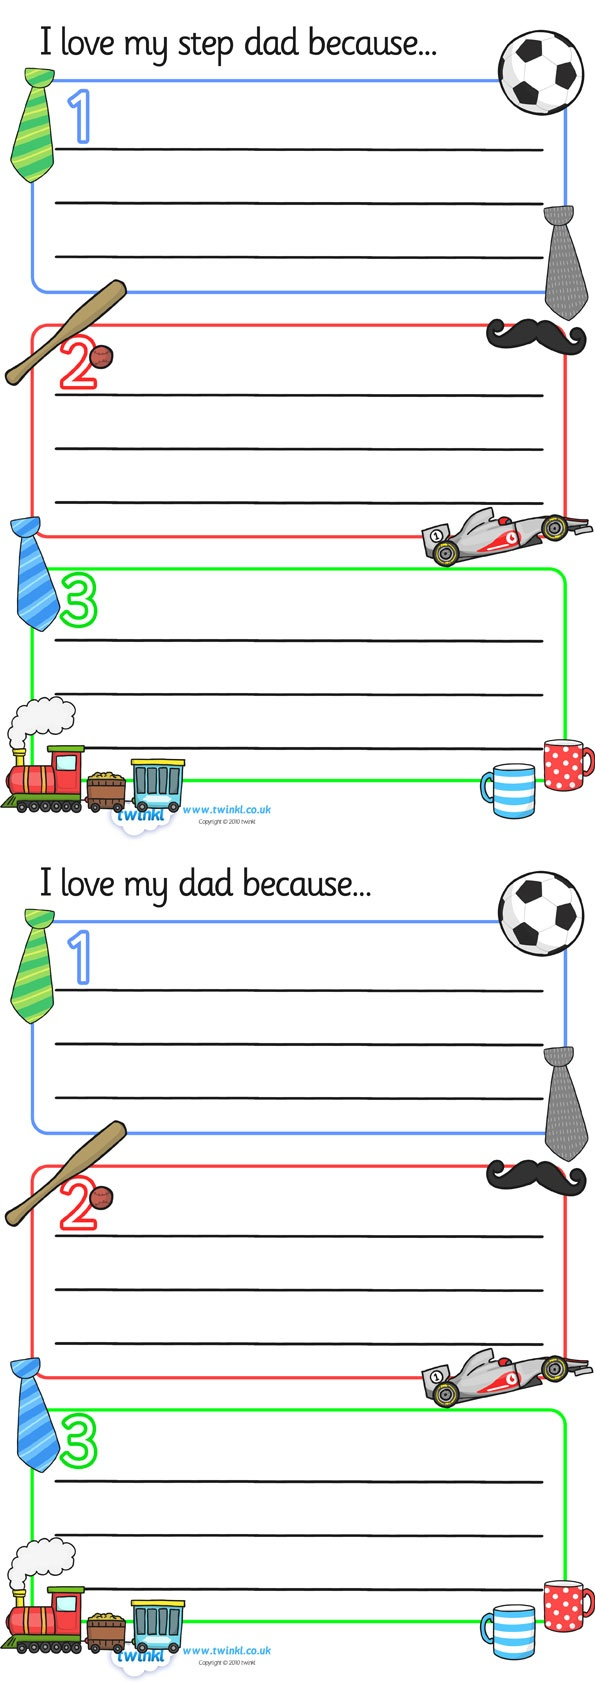 I Love My Dad/Step dad Writing Templates  - Pop over to our site at www.twinkl.co.uk and check out our lovely Father's Day primary teaching resources! Father's day, Dad, Step Dad, #Father'sDay #Father'sDay_Resources